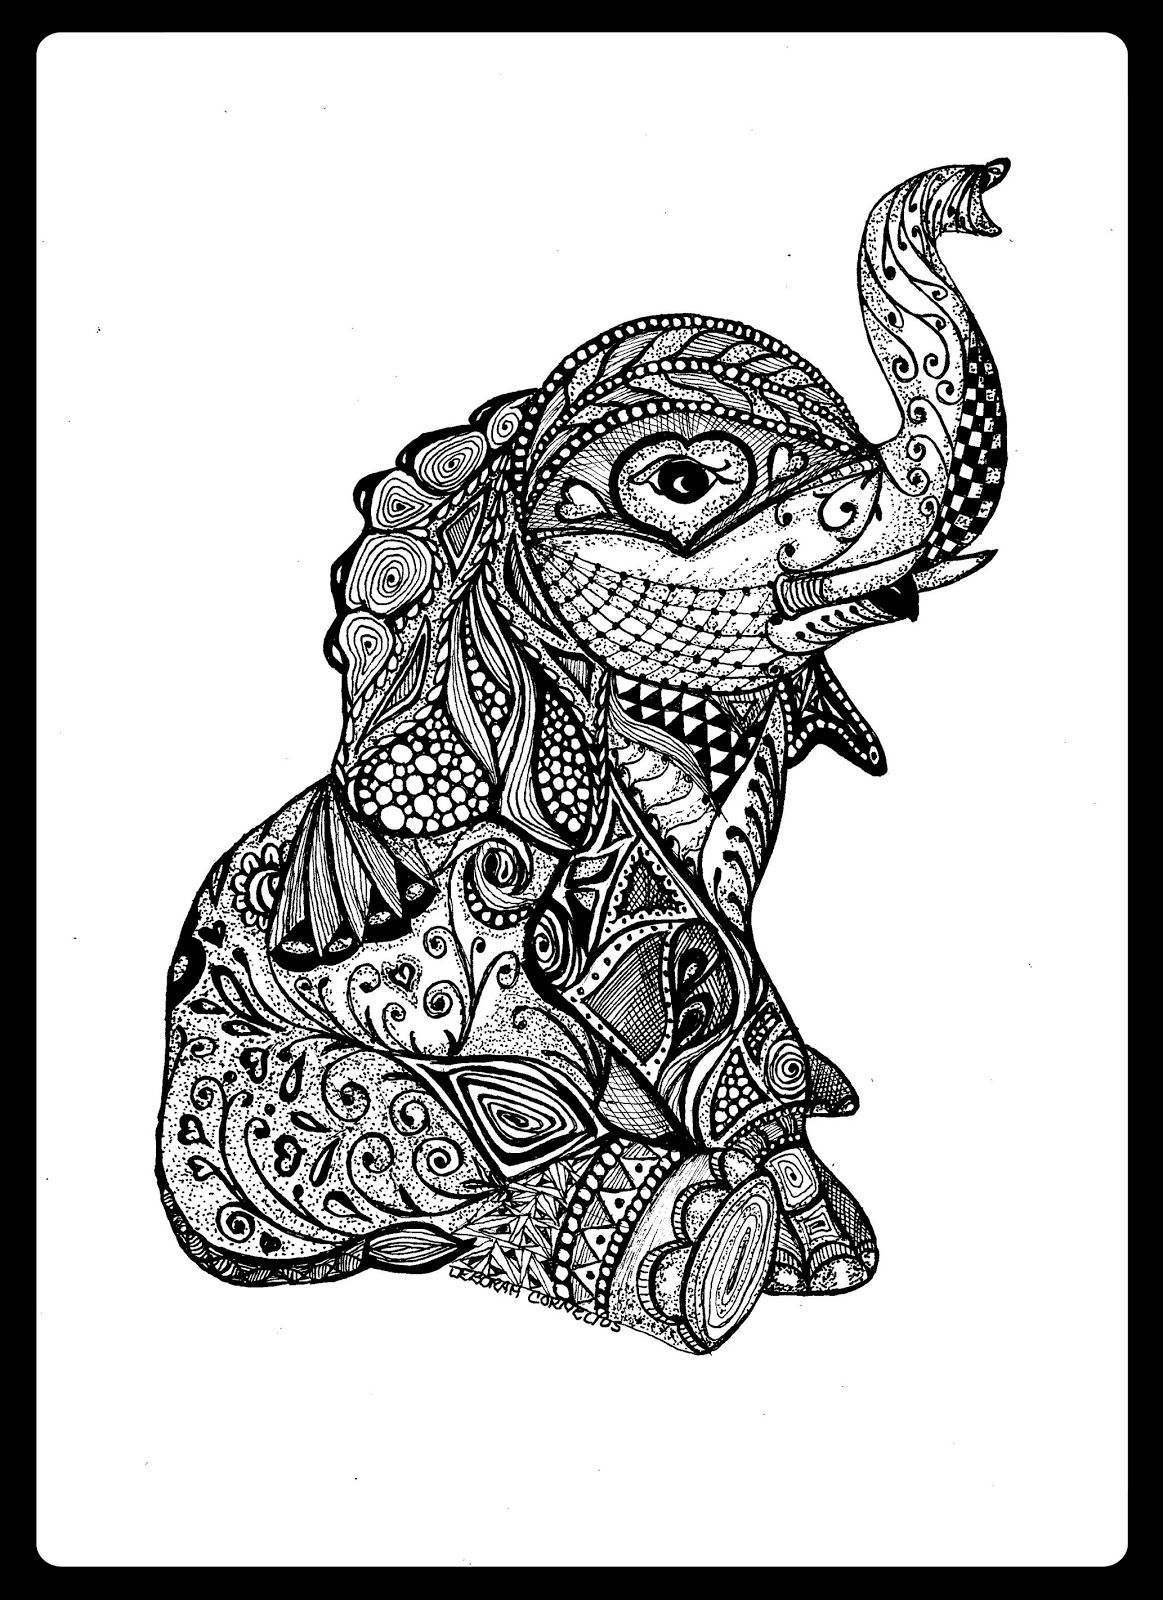 detailed animal coloring pages adult coloring pages animals best coloring pages for kids pages animal detailed coloring